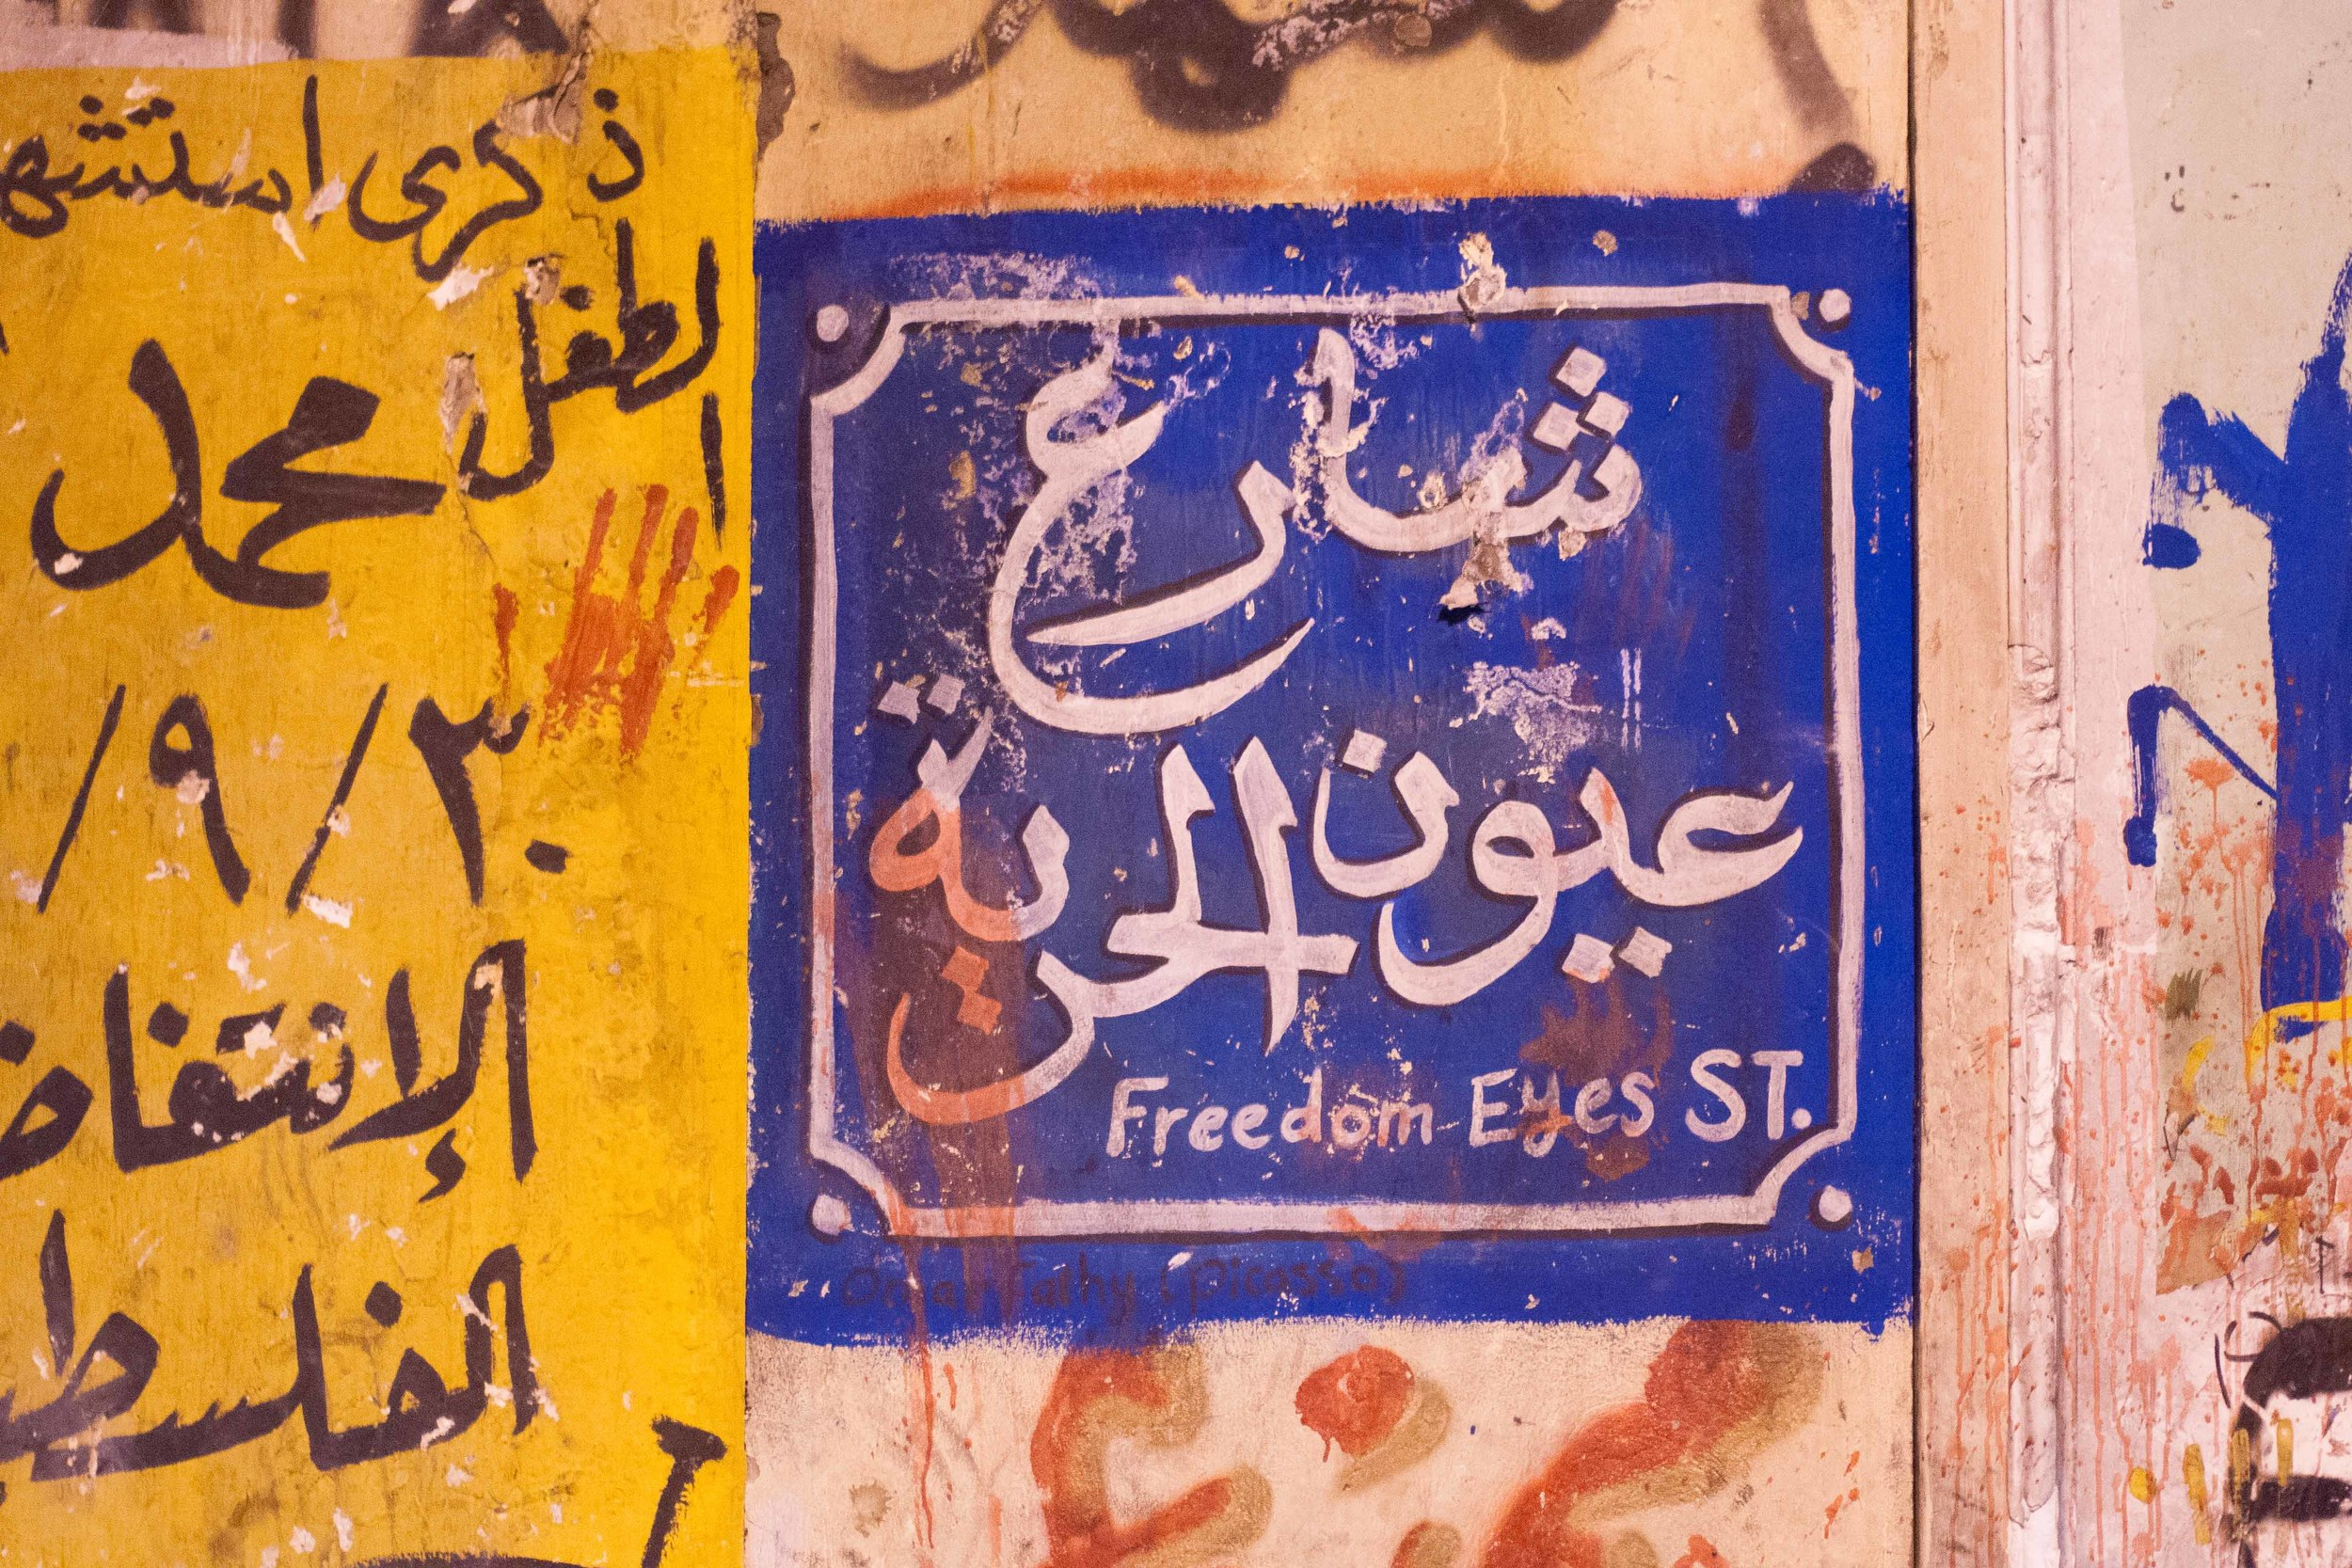 Mohamed Mahmoud Street as been informally renamed 'Freedom Eyes Street' in honour of the protestors who were blinded by police fire last November.